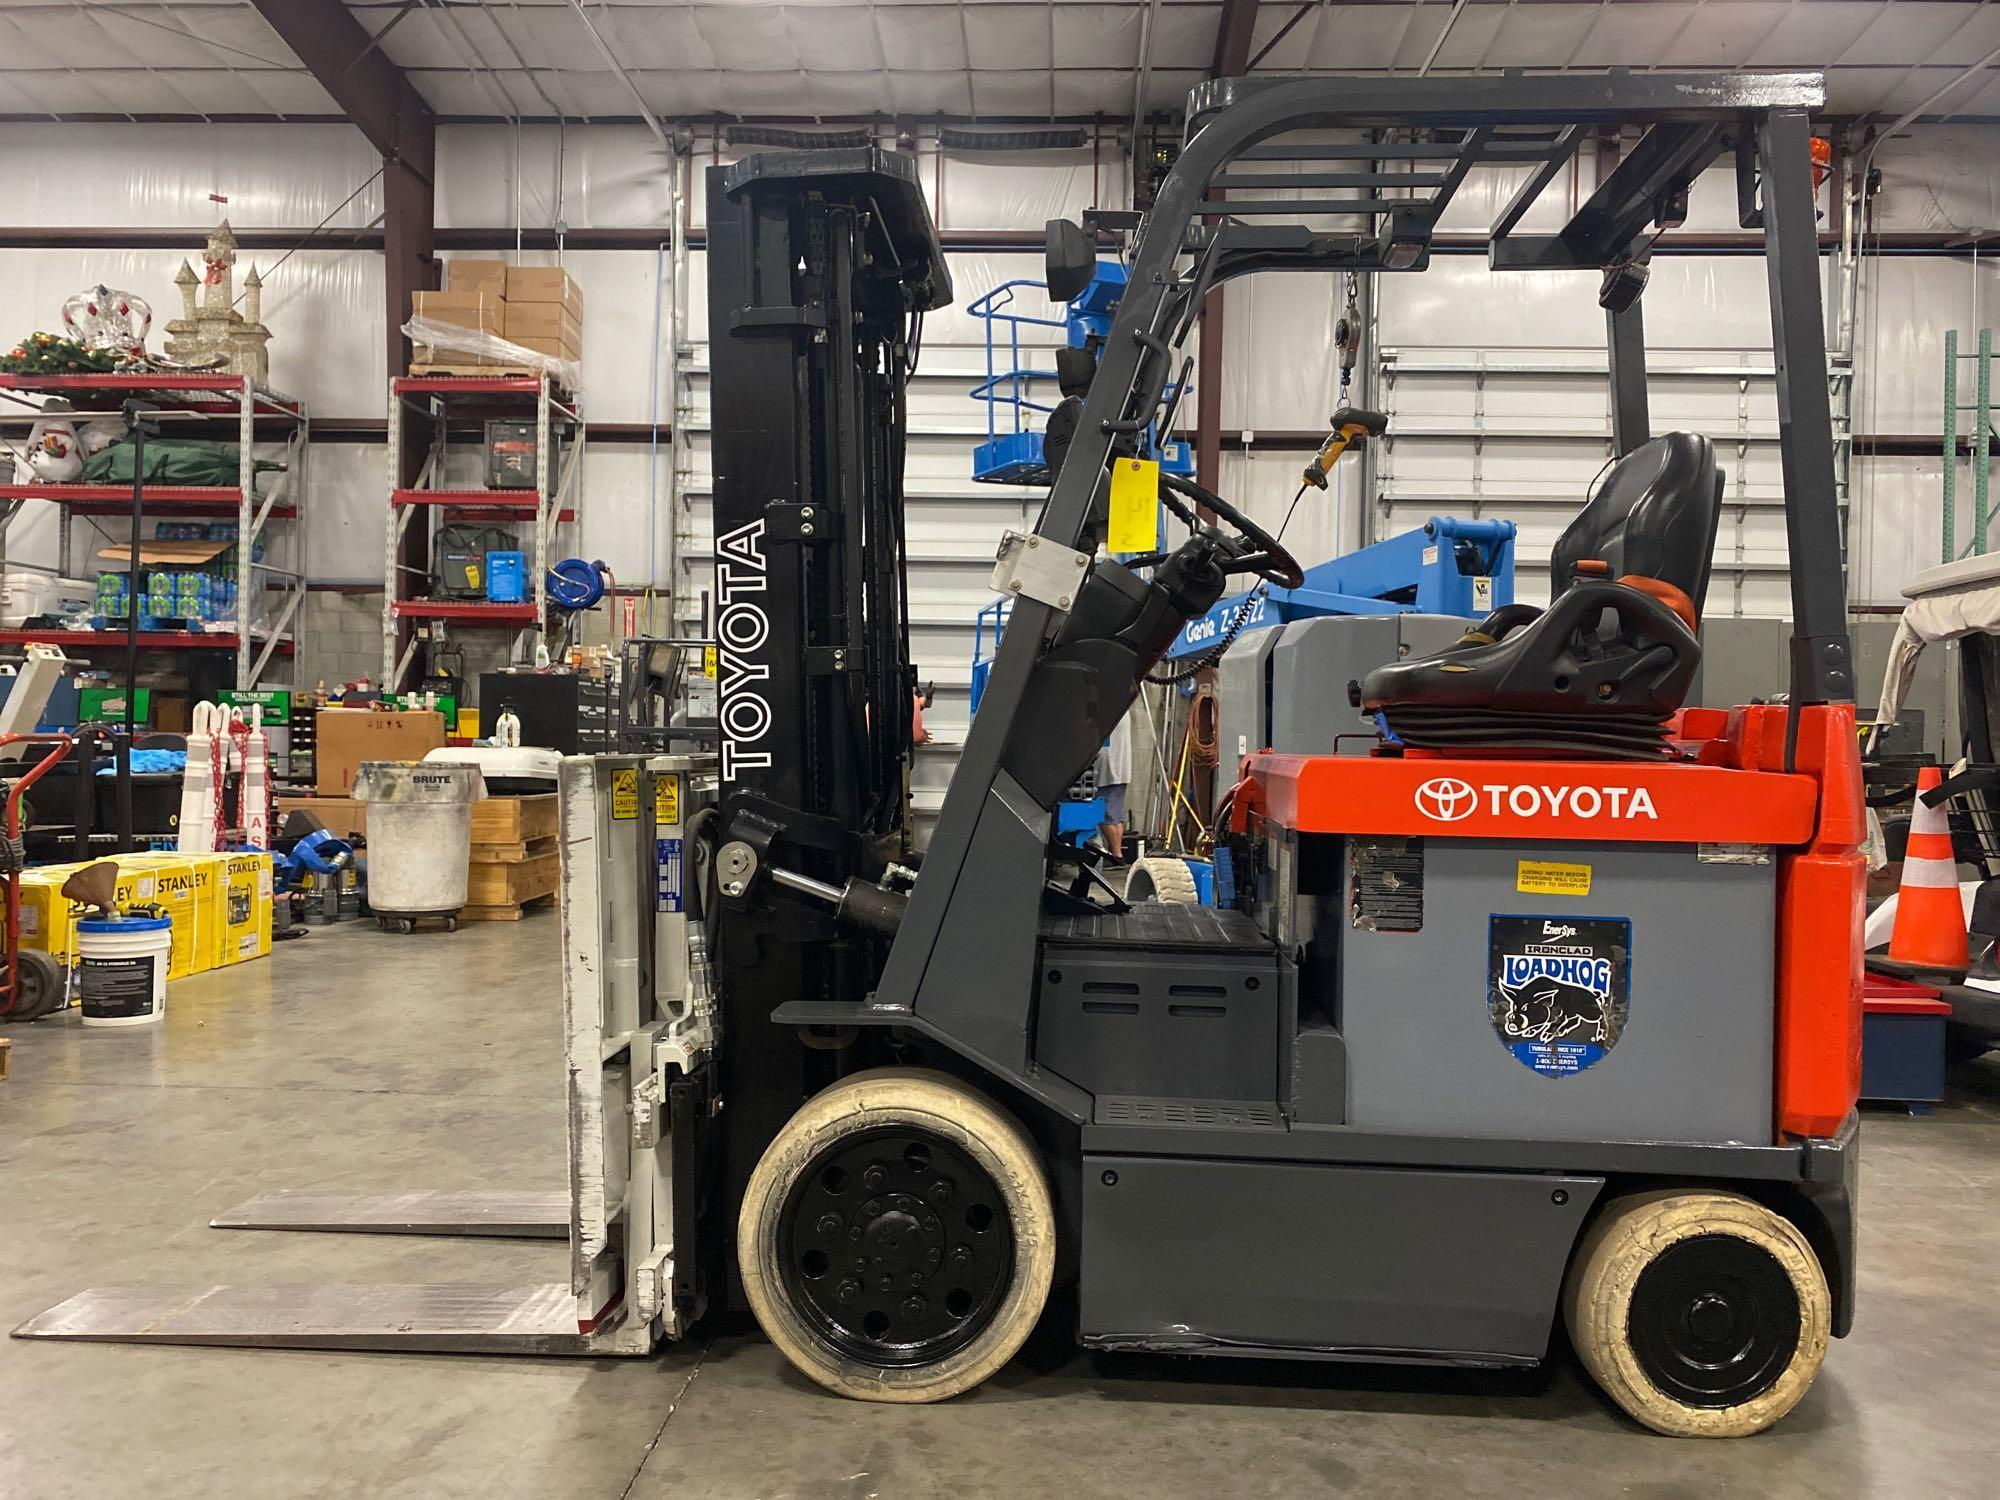 """TOYOTA ELECTRIC FORKLIFT MODEL 7FBCU25, 189"""" HEIGHT CAPACITY, TILT, SIDESHIFT, 36V, RUNS AND OPERATE - Image 5 of 11"""